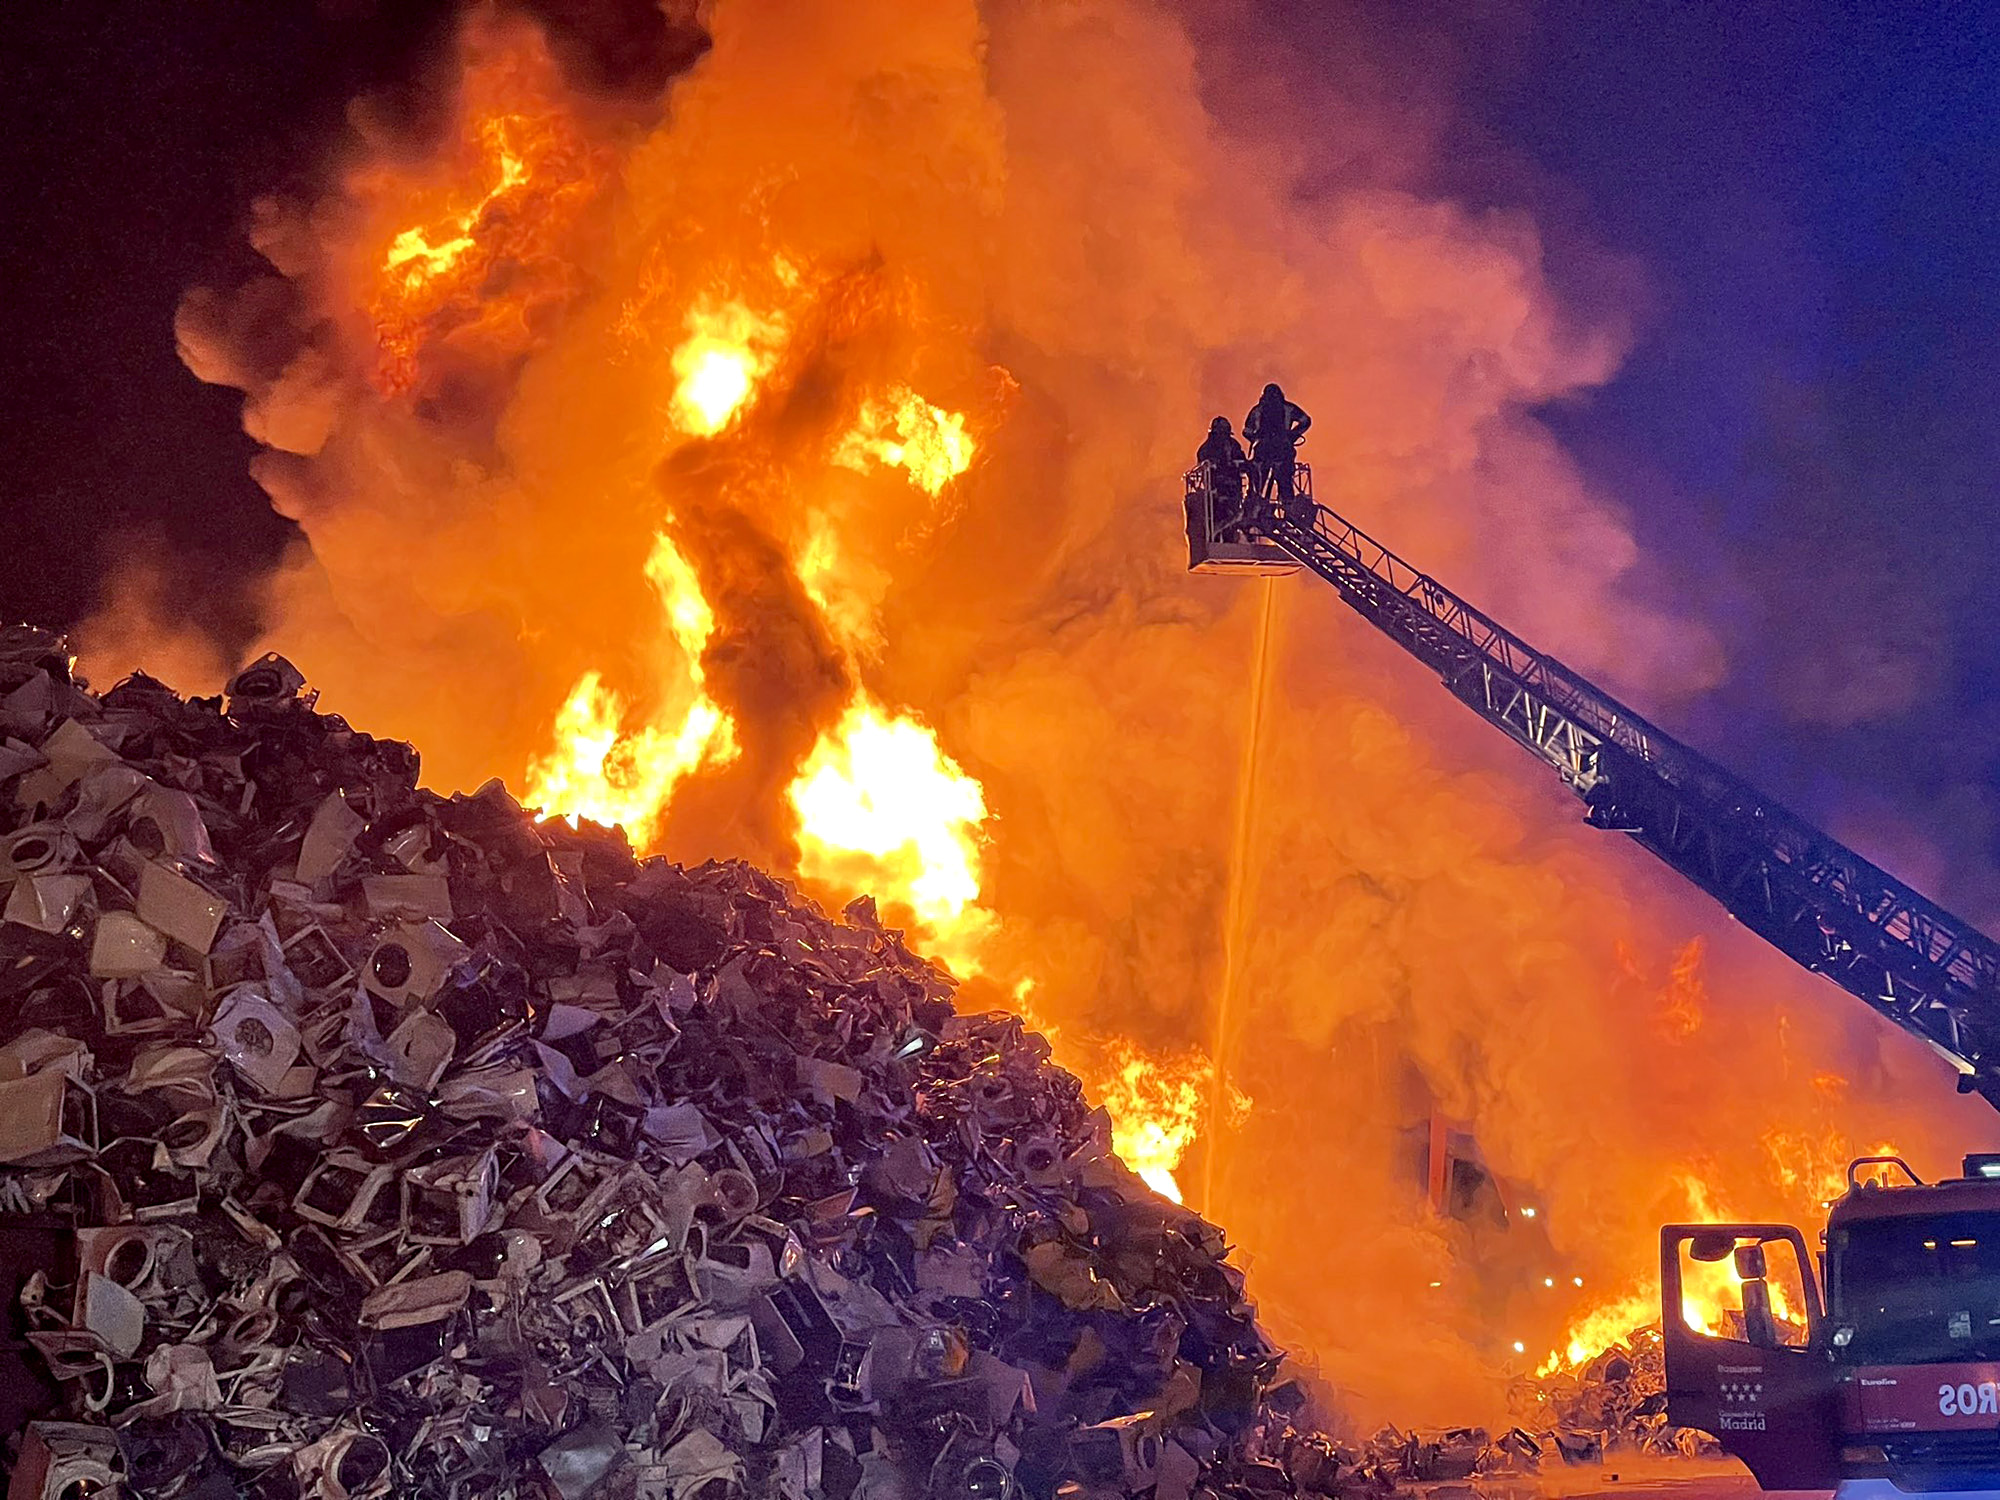 VIDEO: They're Toast: Hundreds Of Kitchen Gadgets Go Up In Inferno